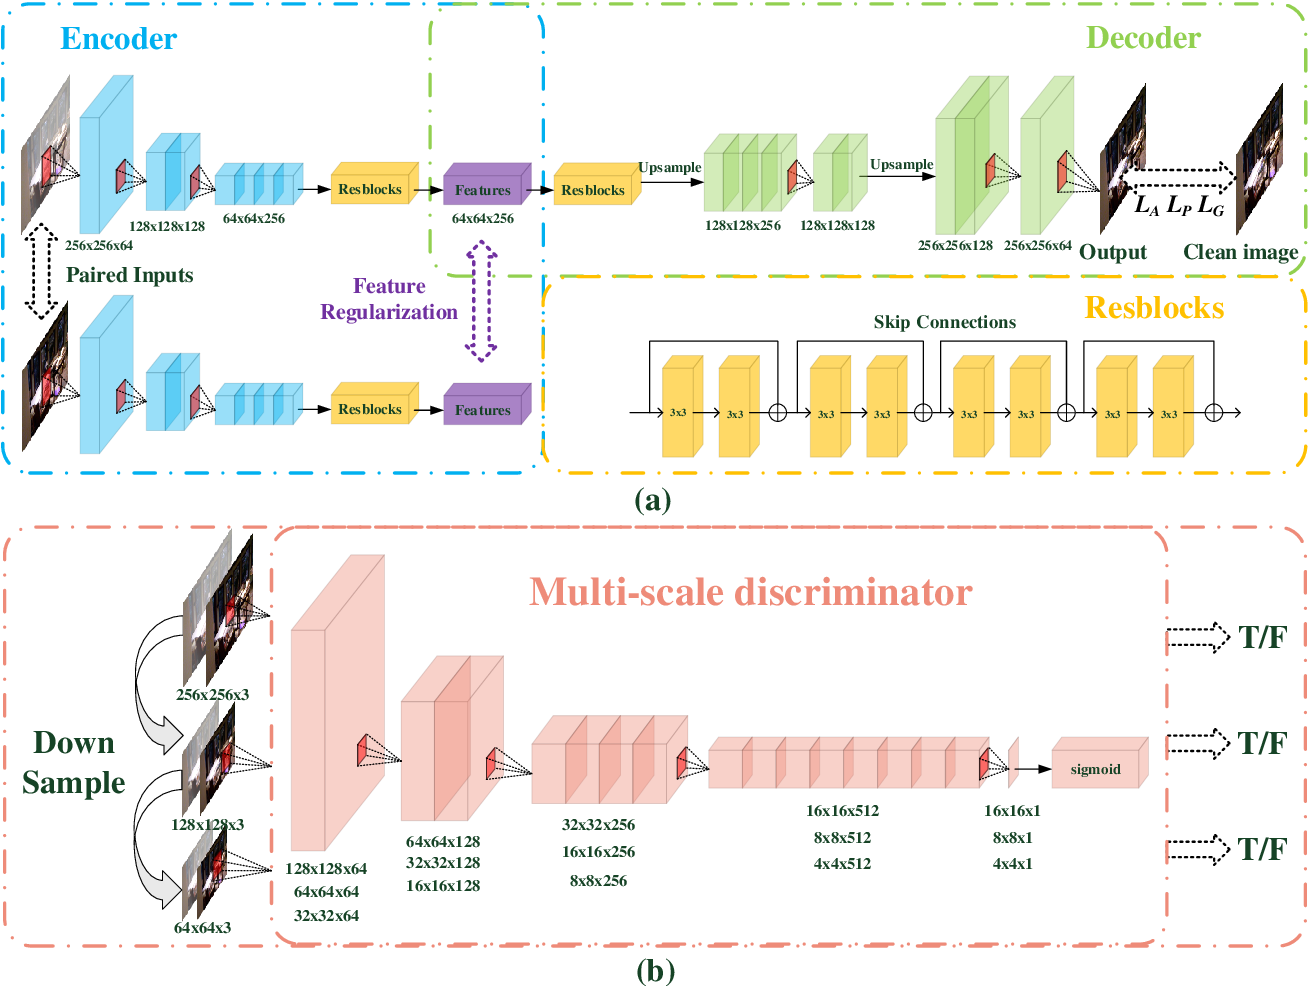 Figure 2 for A feature-supervised generative adversarial network for environmental monitoring during hazy days